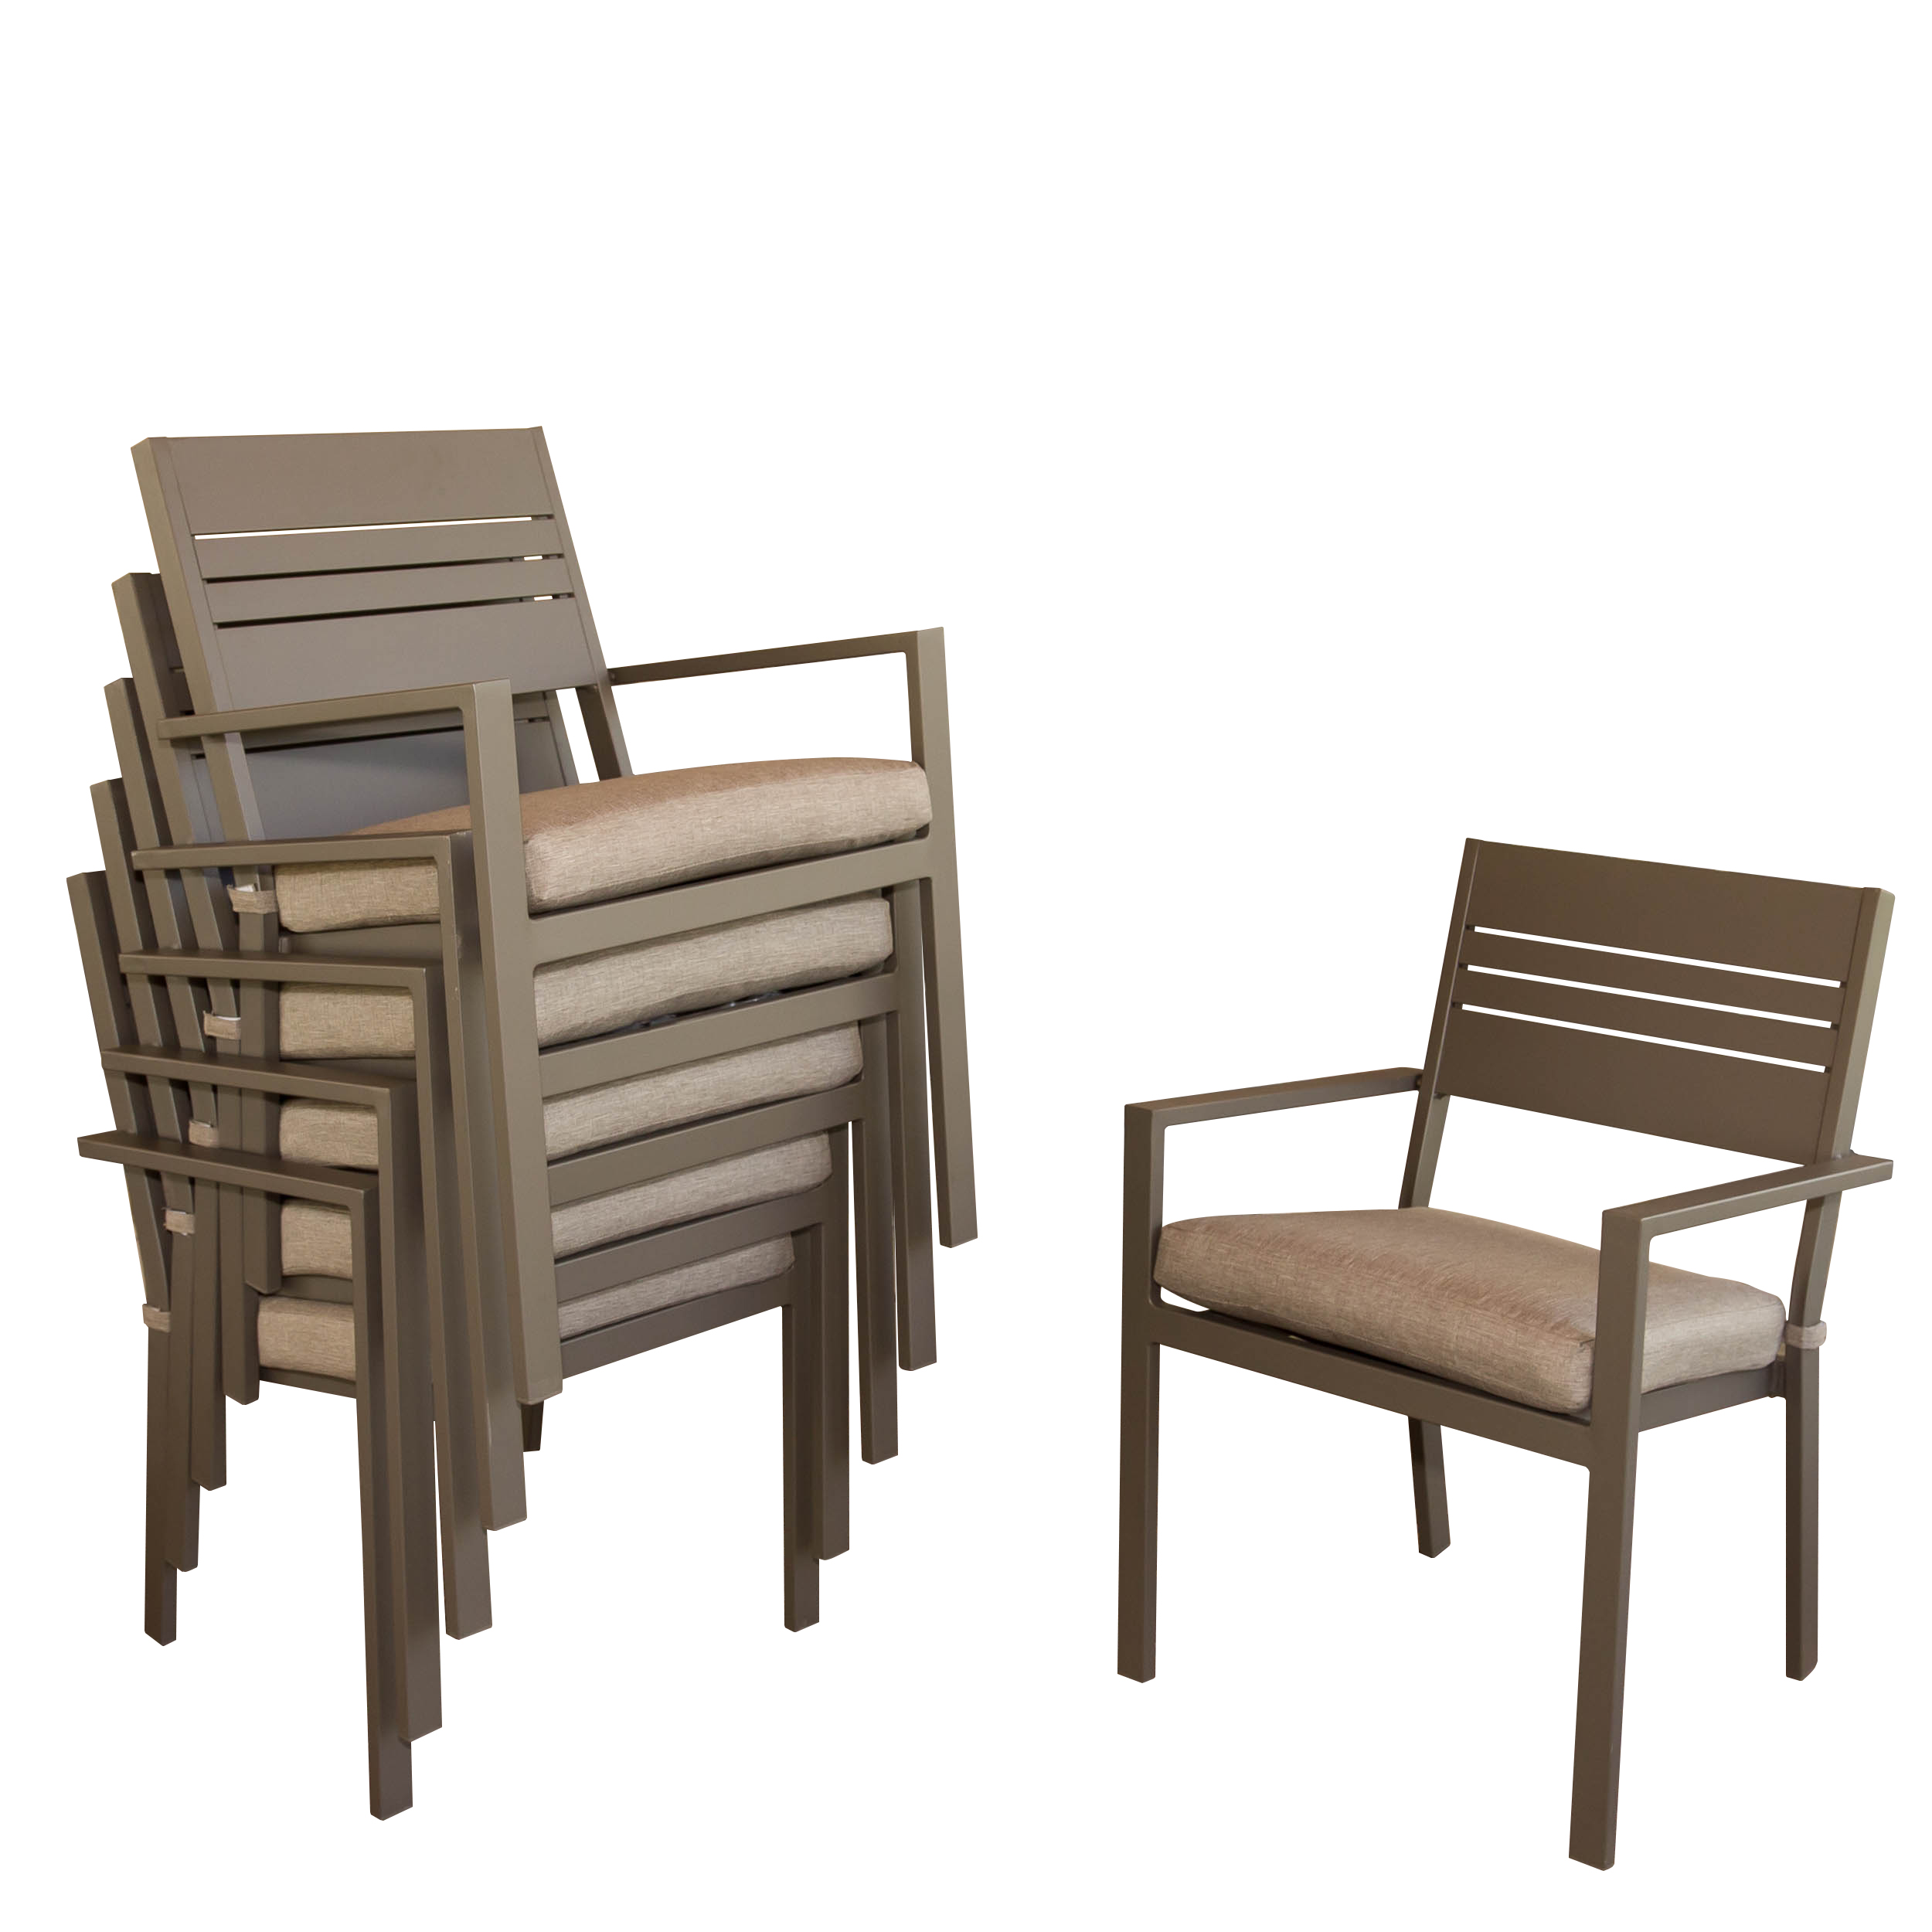 Michael Anthony Kaufmann Aluminum Stackable Dining Chair Set with Cushions